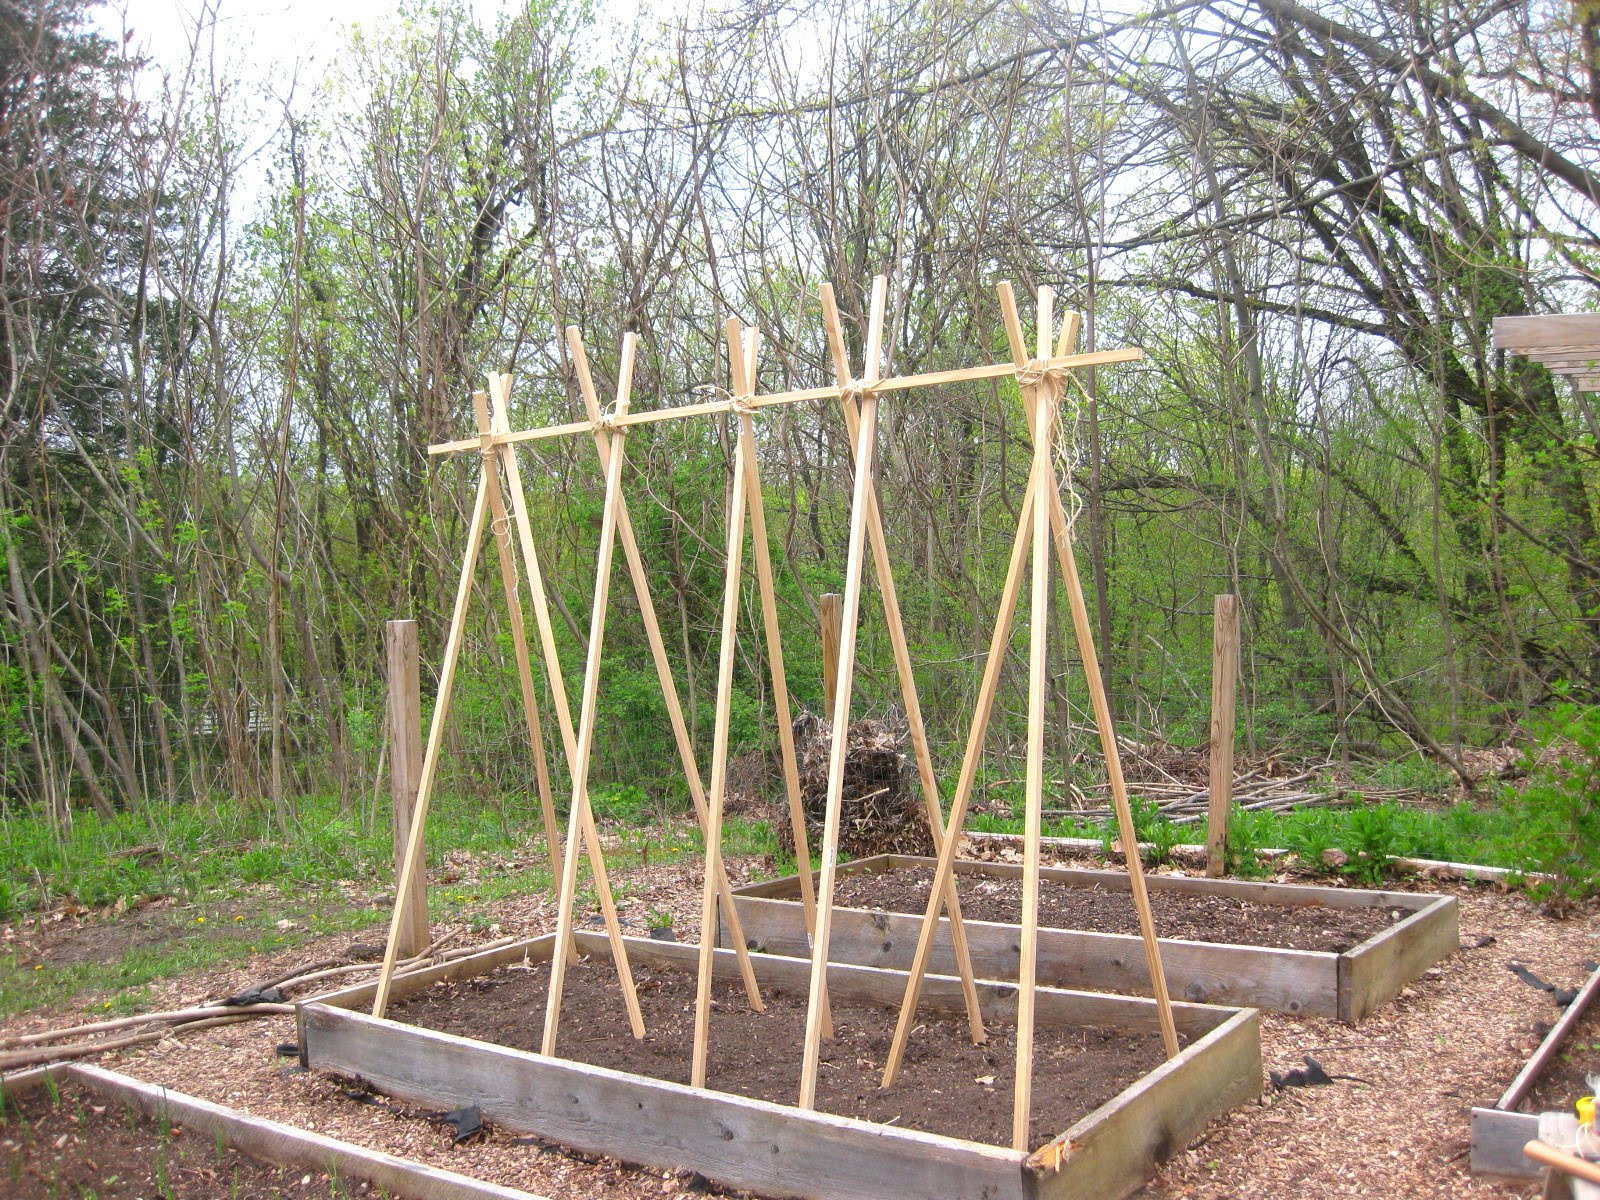 Making Beds With Wood Poles